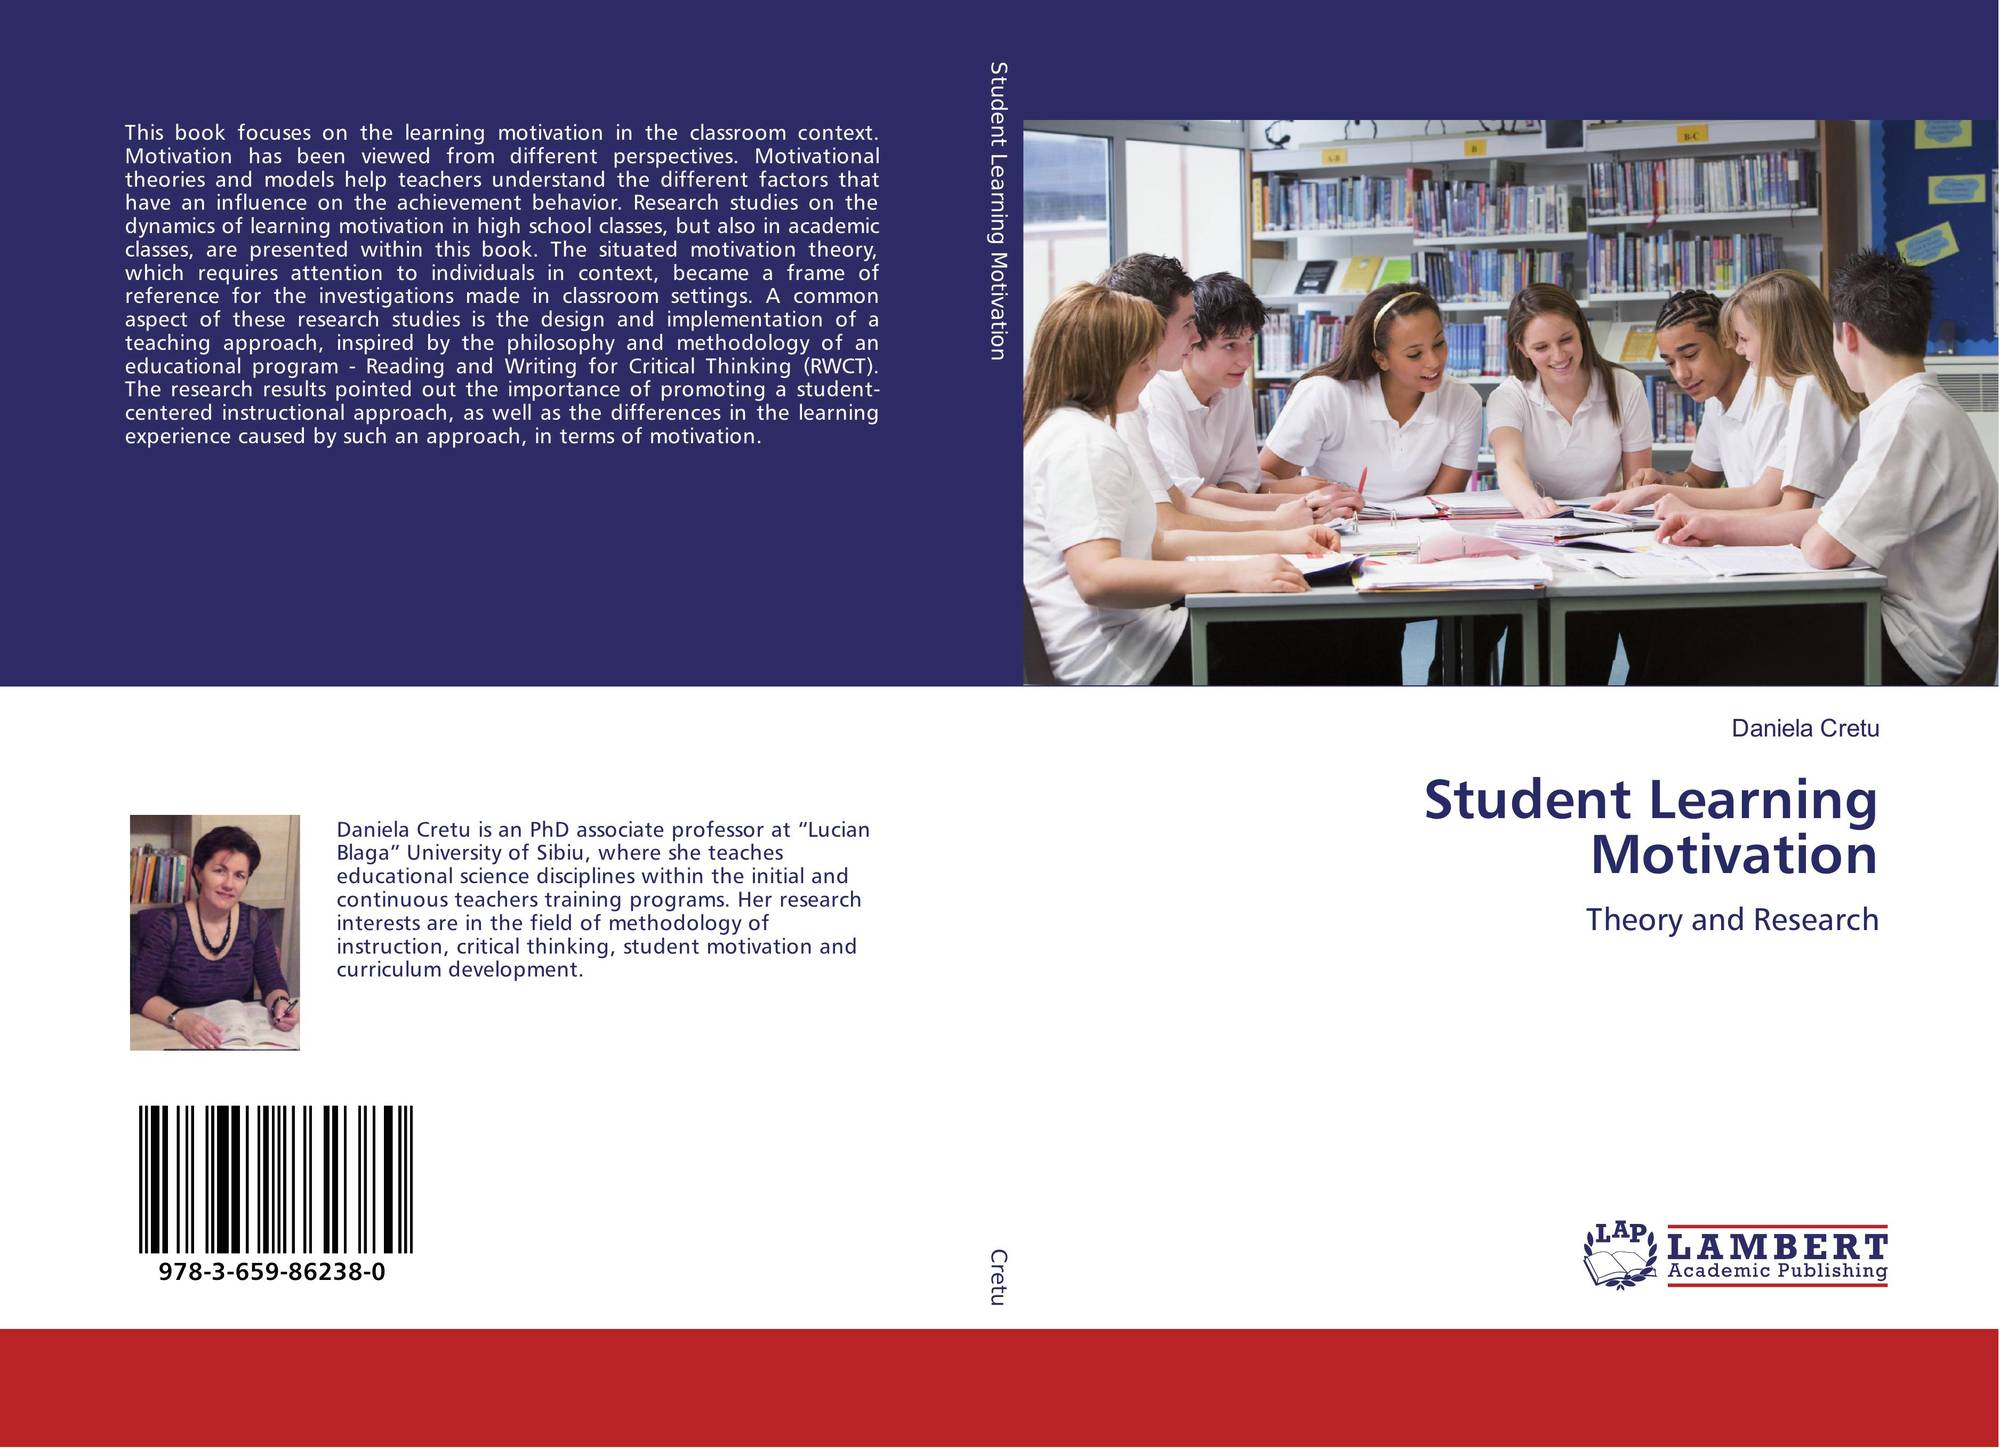 contexts motivate learning Motivation, engagement, and student voice  where they come from, what they bring: motivation in social context 3 motivating growth in intelligence 5 the shift from behaviorism to constructivism in motivation research 7  a focus on student voice in student-centered learning contexts can enhance growth opportunities in the cognitive.